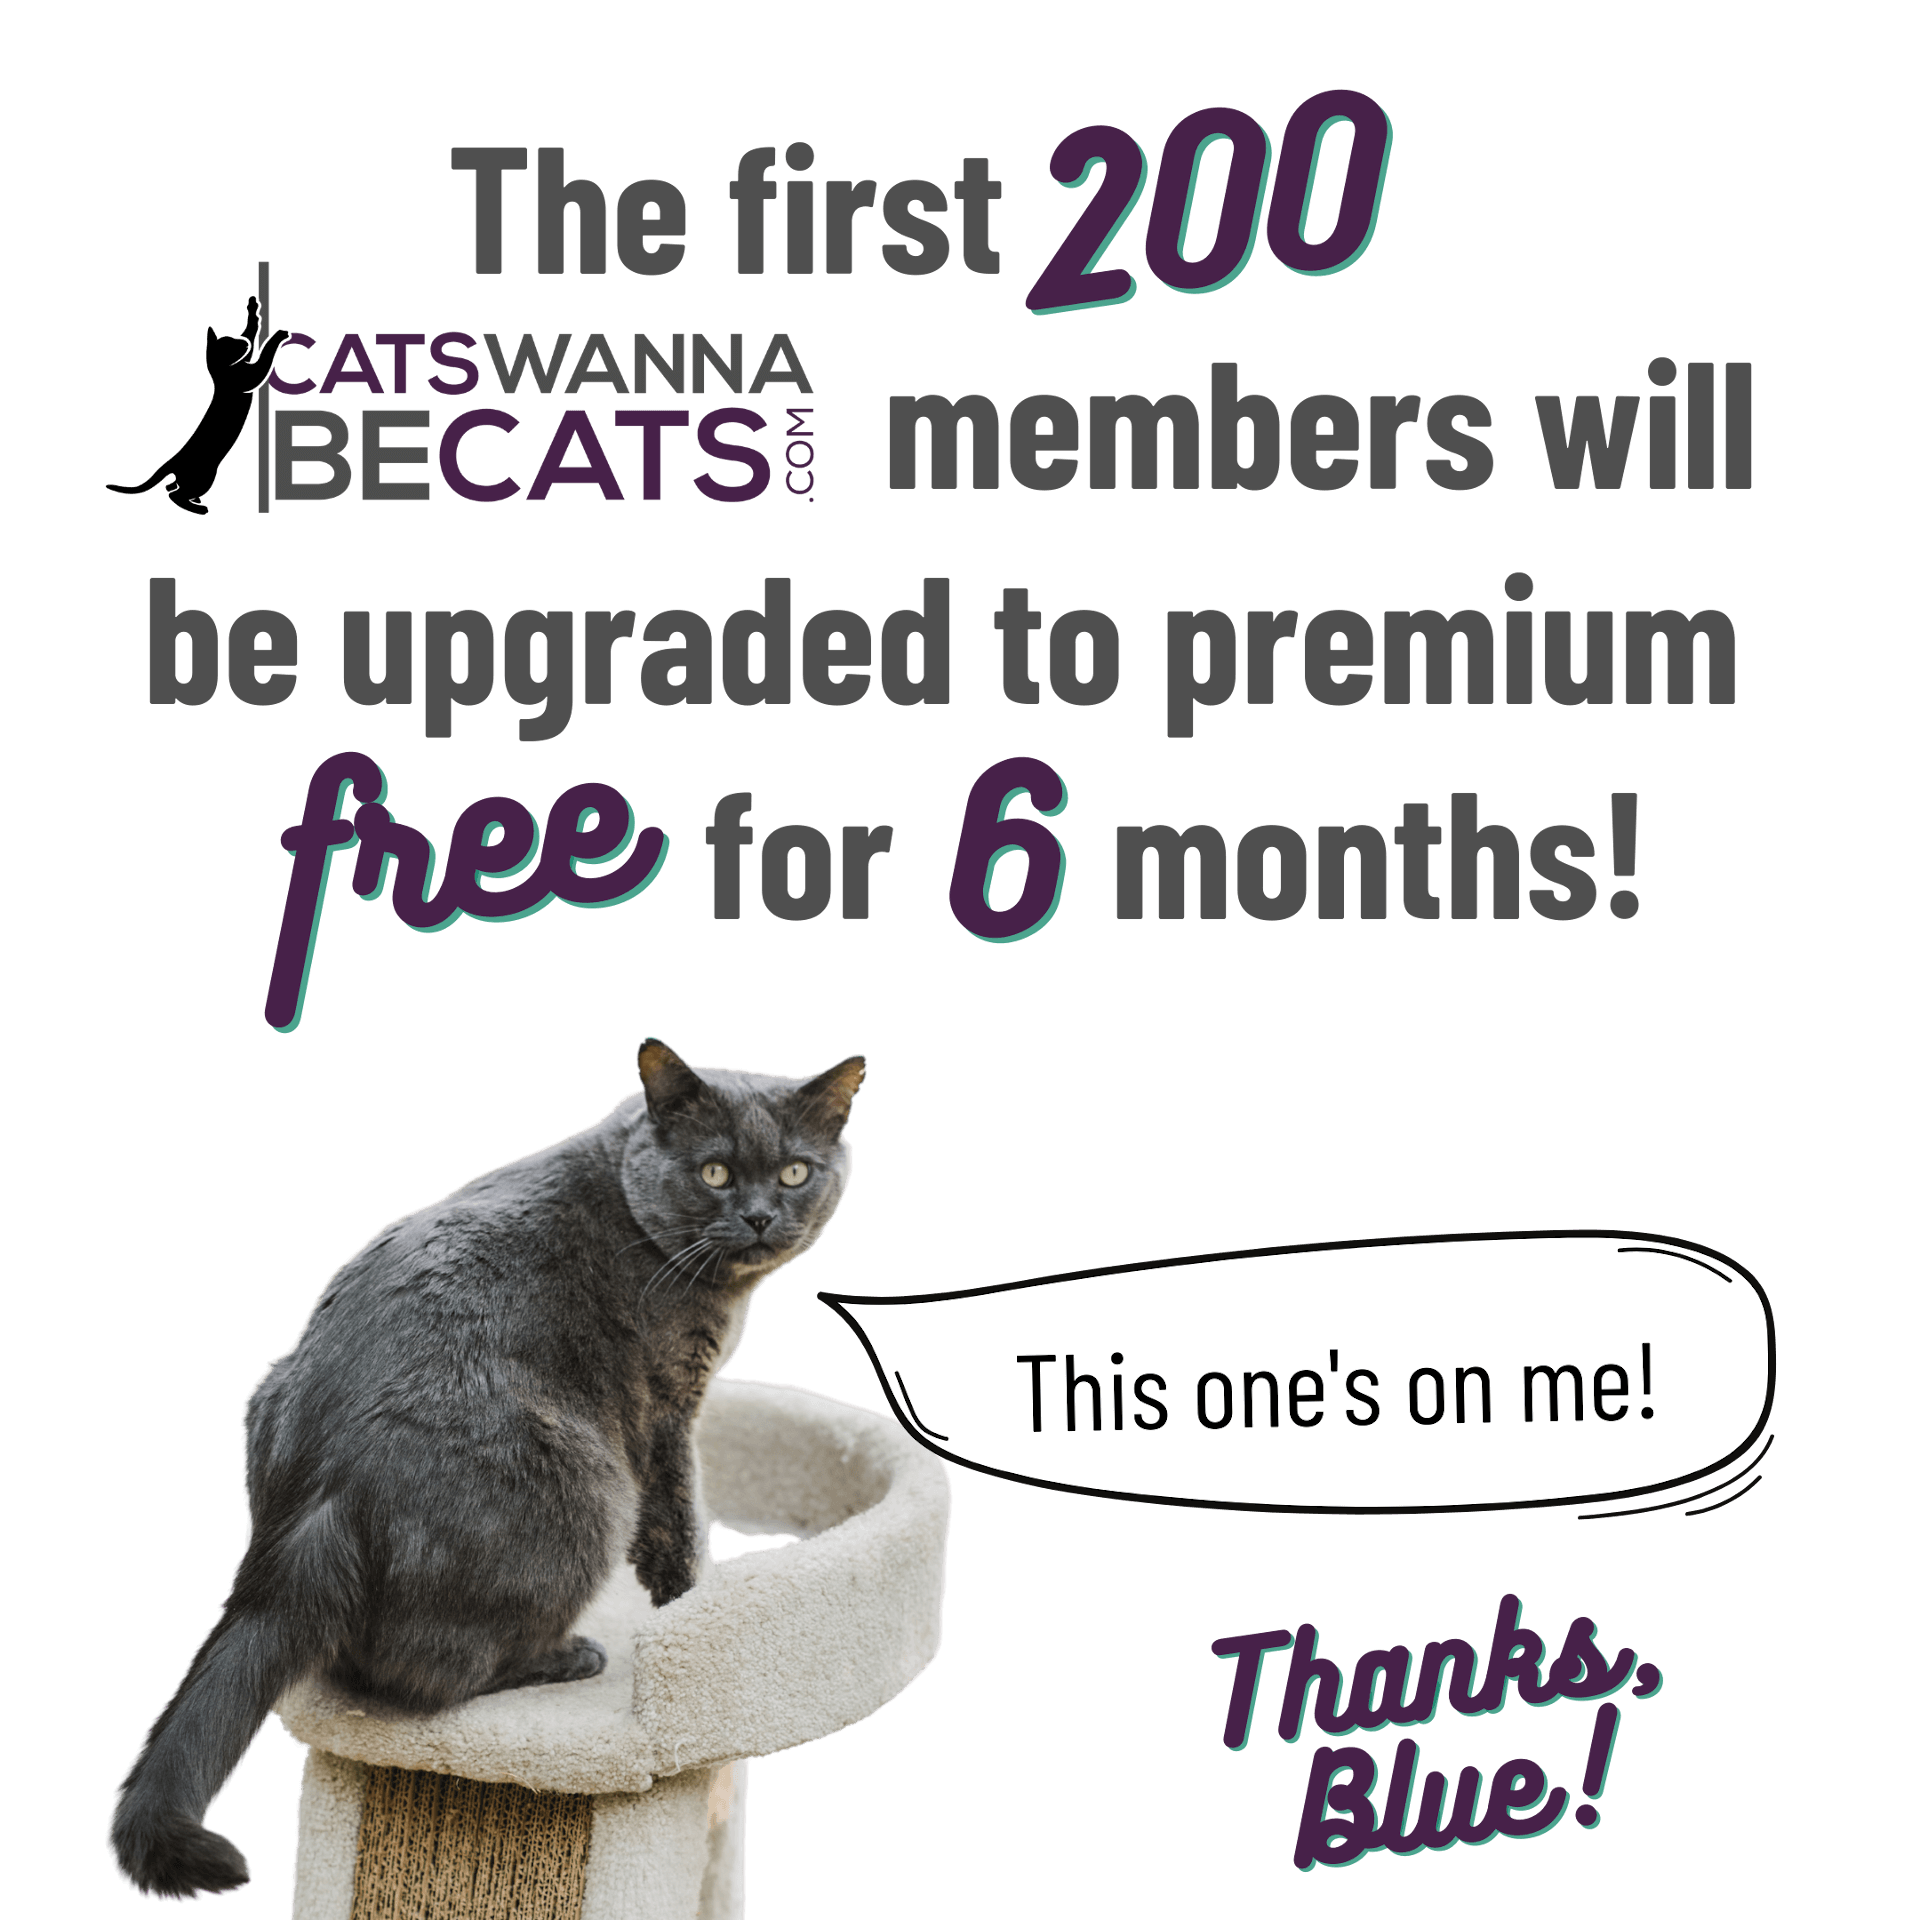 Cats Wanna Be Cats - First 200 Promo